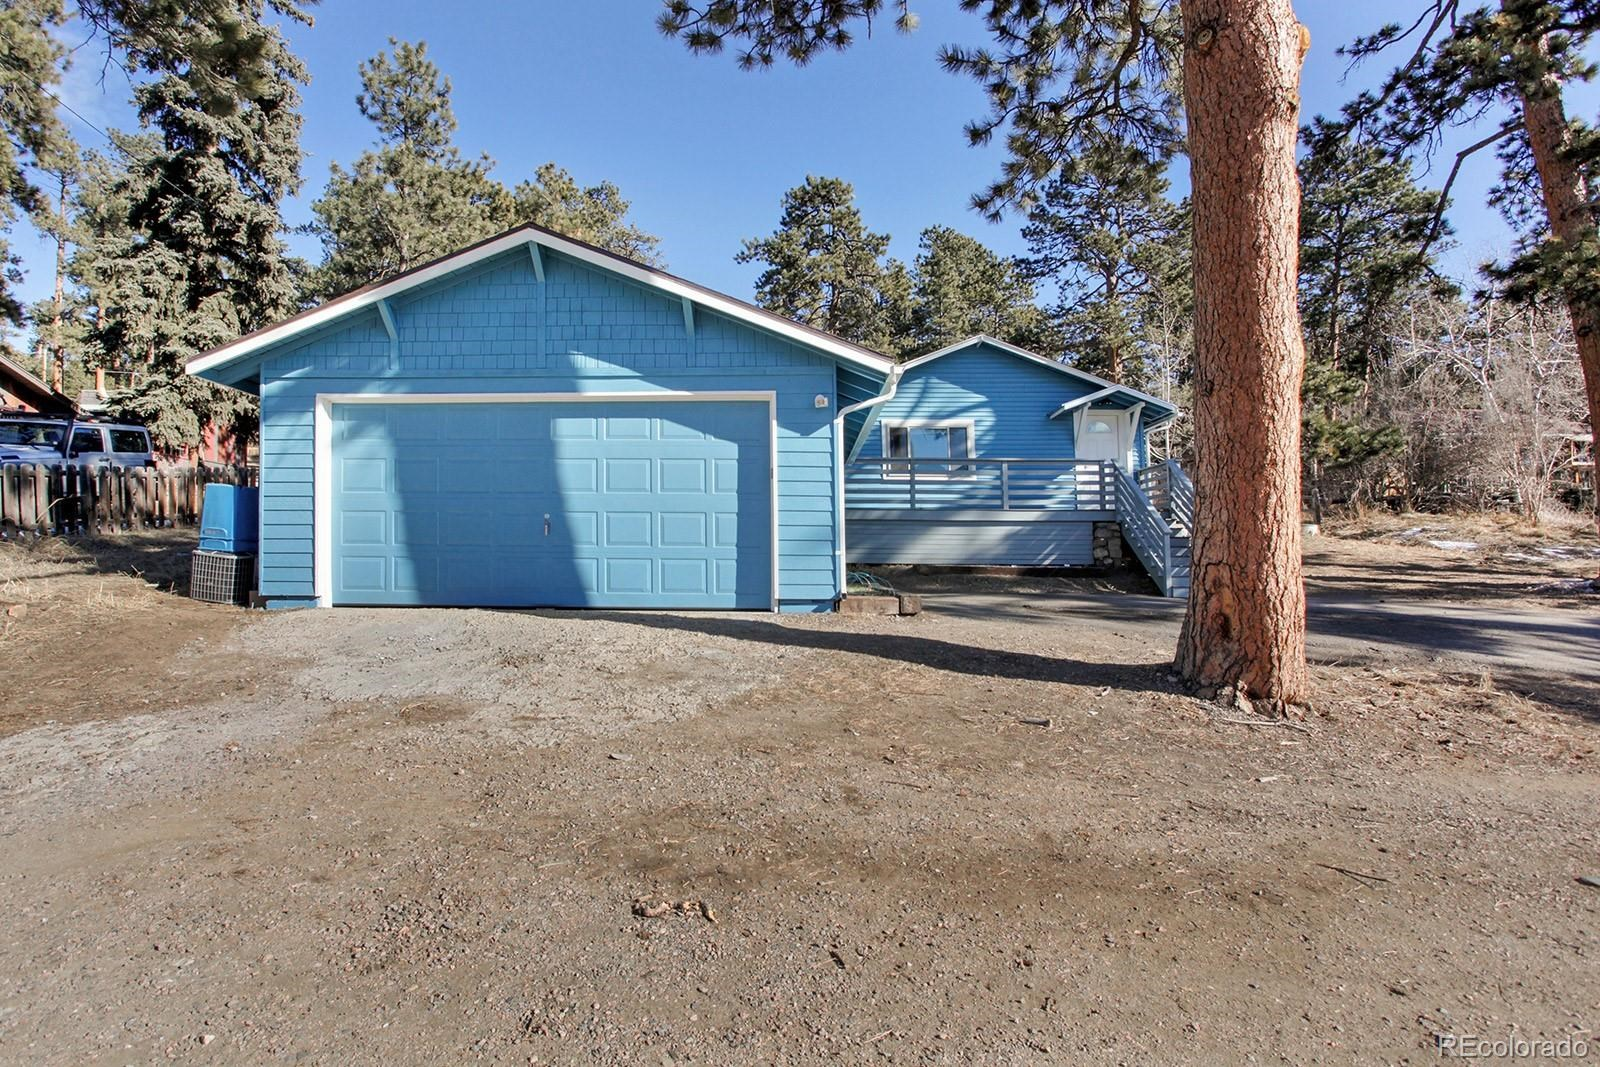 MLS# 9408188 - 2 - 4550 Parmalee Gulch Road, Indian Hills, CO 80454